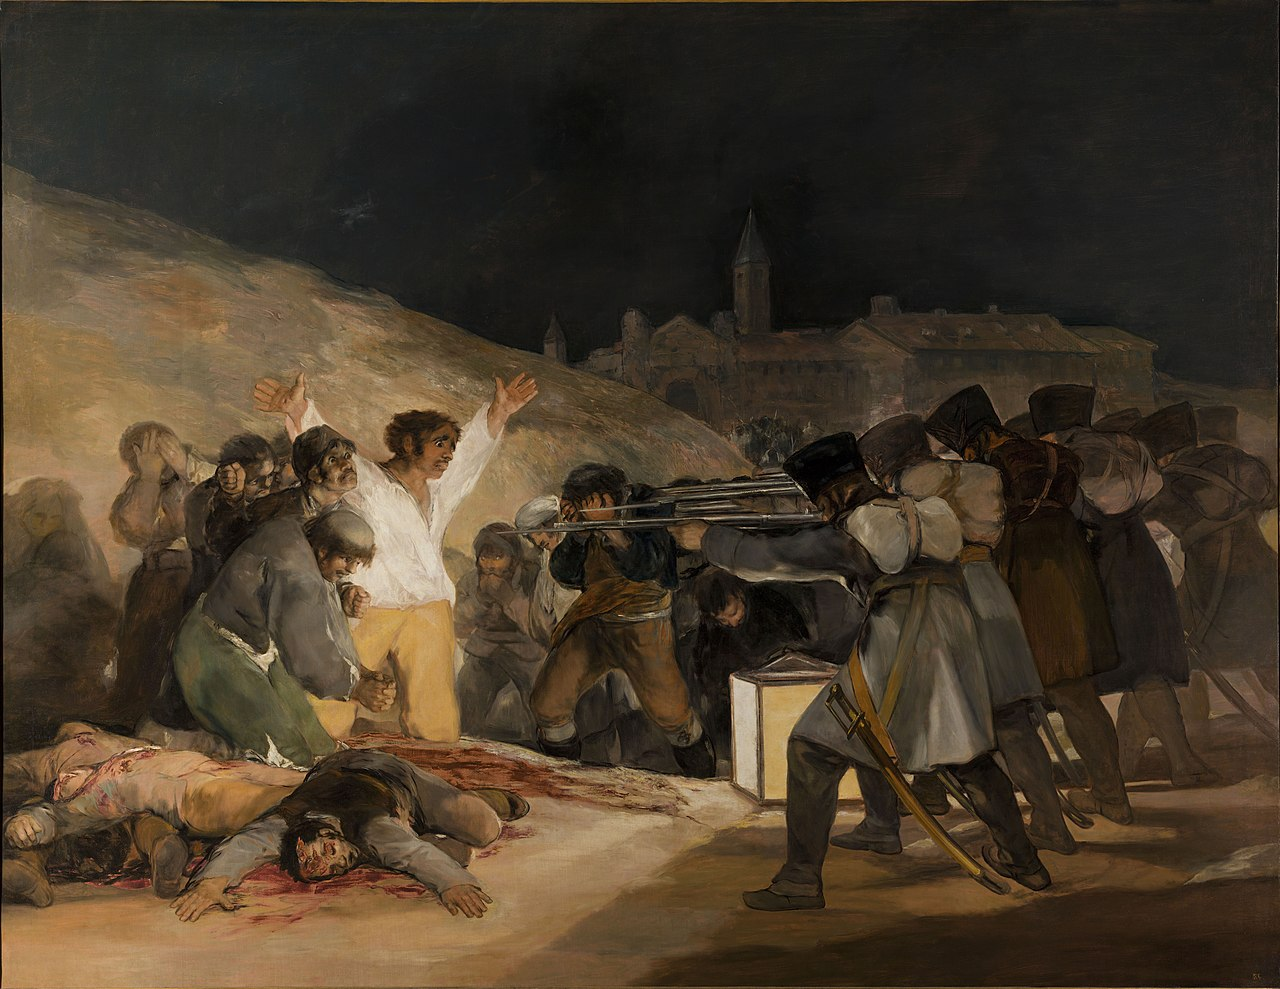 https://upload.wikimedia.org/wikipedia/commons/thumb/f/fd/El_Tres_de_Mayo%2C_by_Francisco_de_Goya%2C_from_Prado_thin_black_margin.jpg/1280px-El_Tres_de_Mayo%2C_by_Francisco_de_Goya%2C_from_Prado_thin_black_margin.jpg